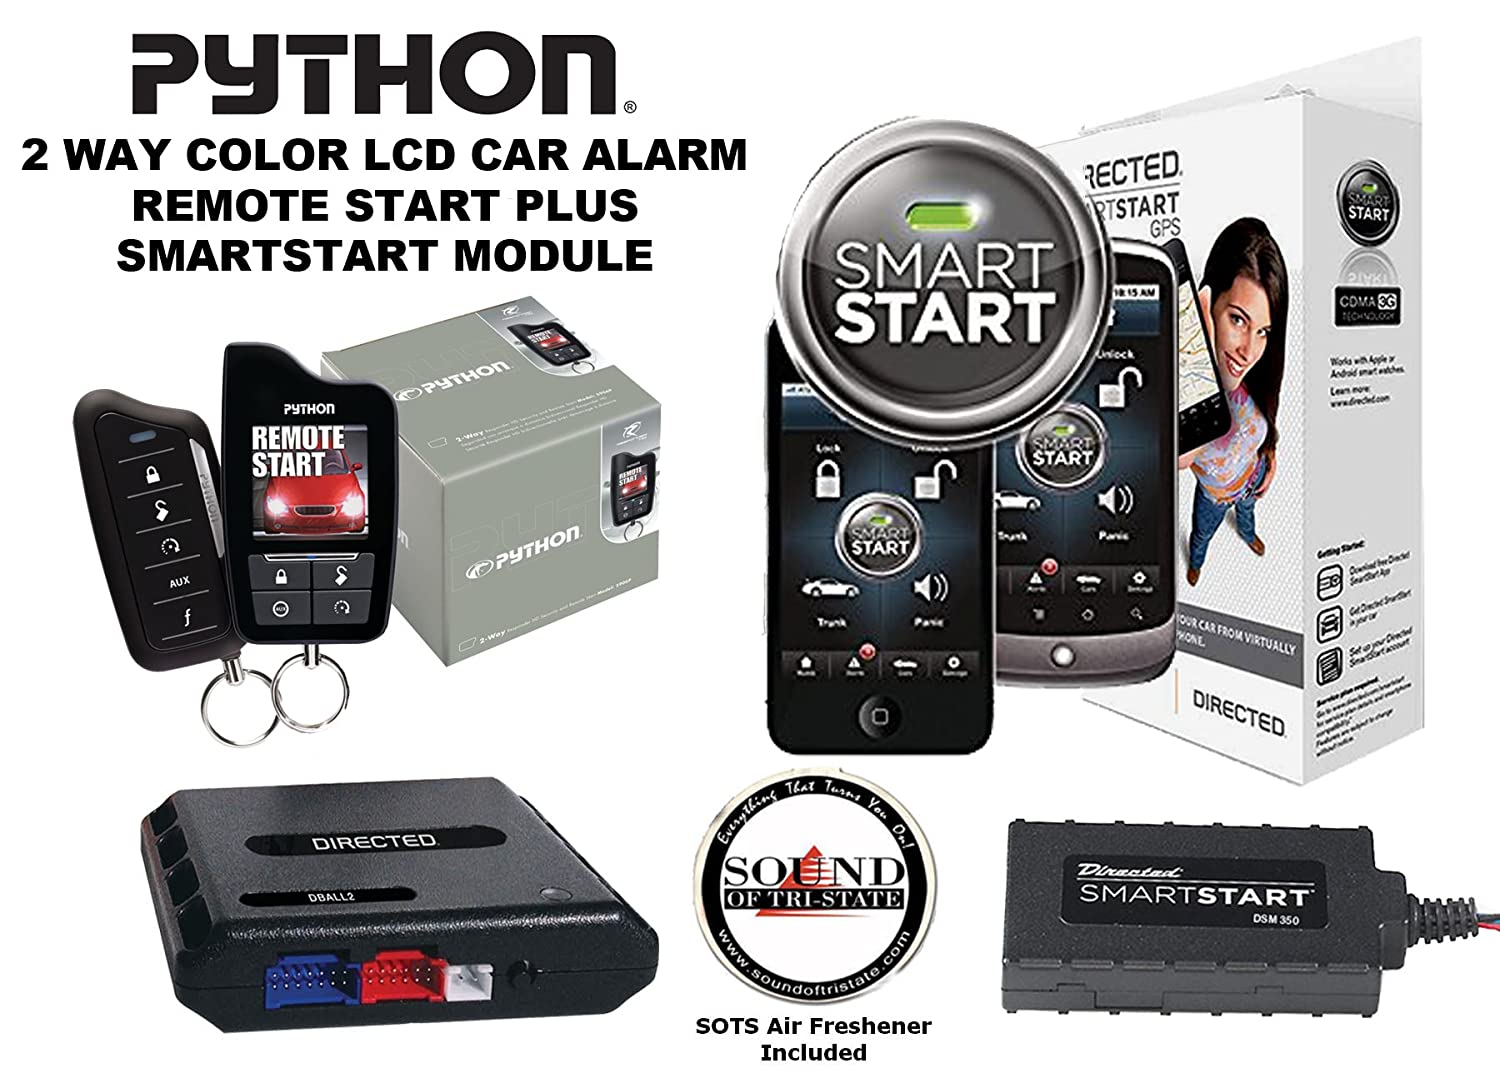 Amazon.com: Python 5906P Two-Way Security and Remote Start System and  XpressKit DBALL2 Databus All Interface Module with Directed DSM350 SmartStart  Module ...